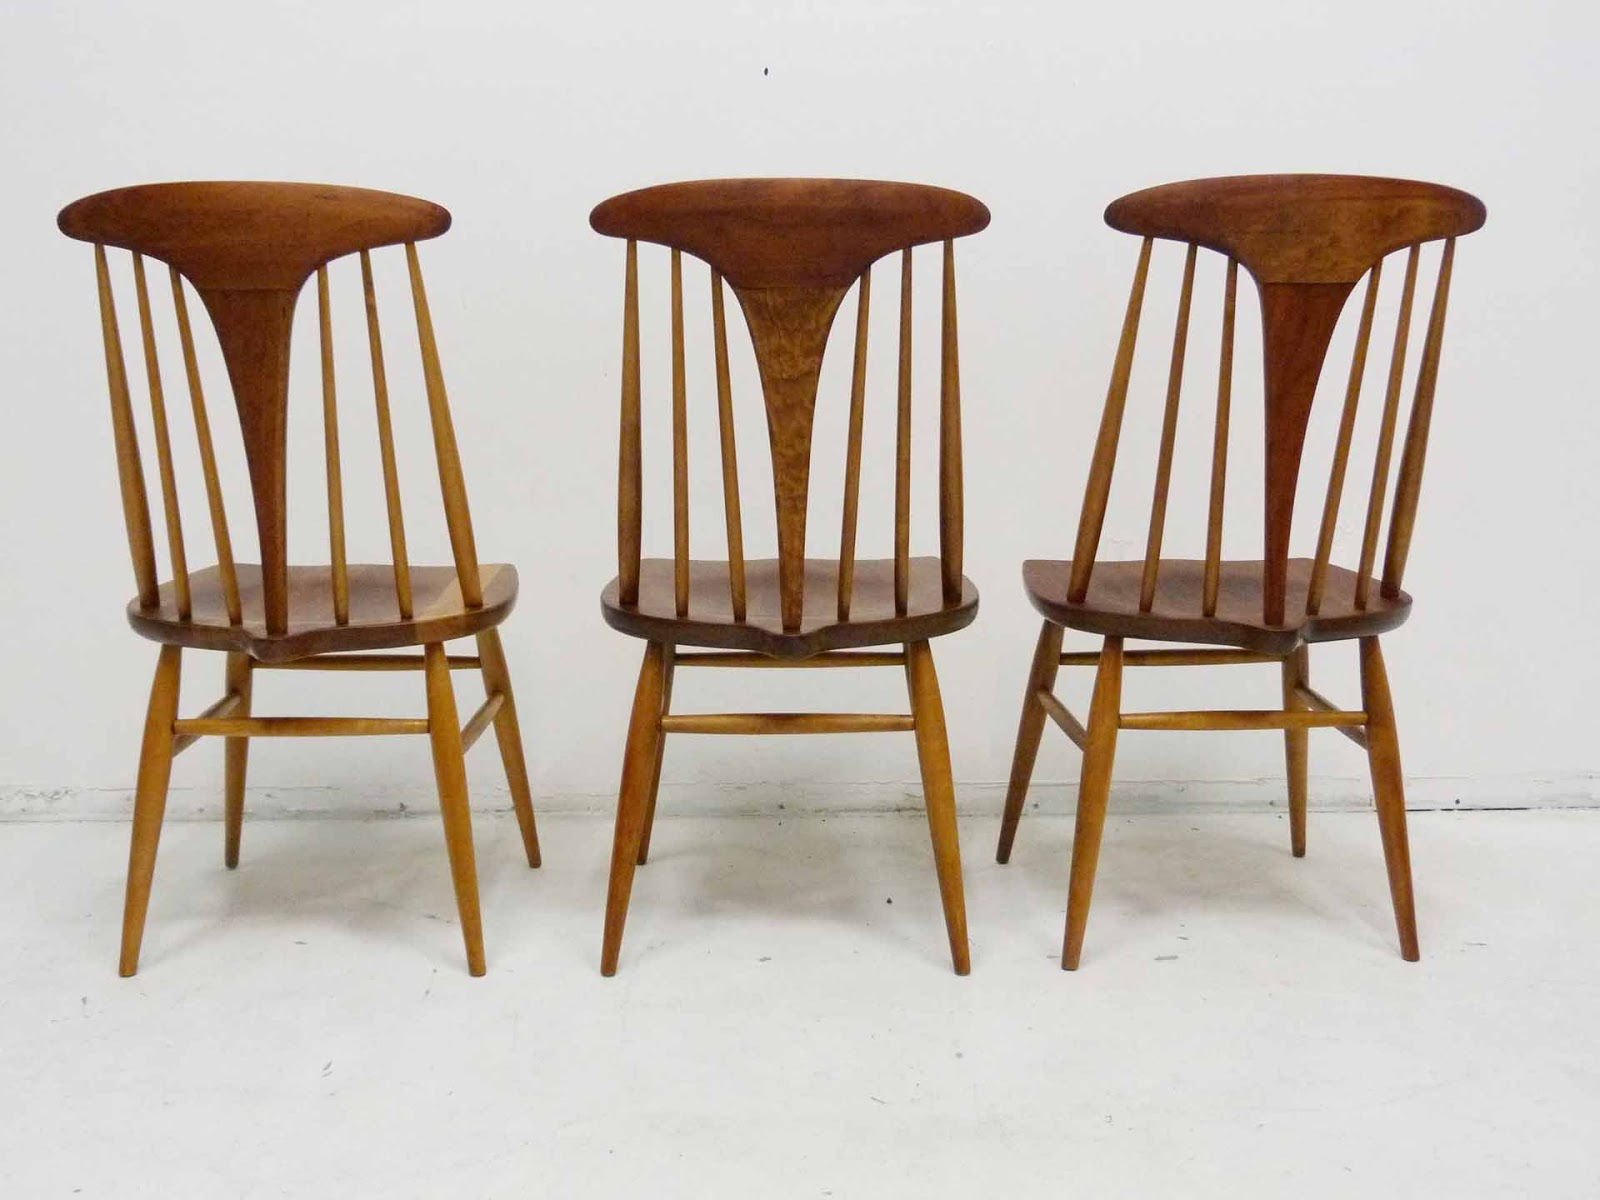 Modern, Mid Century, Danish, Vintage Furniture Shop, Used